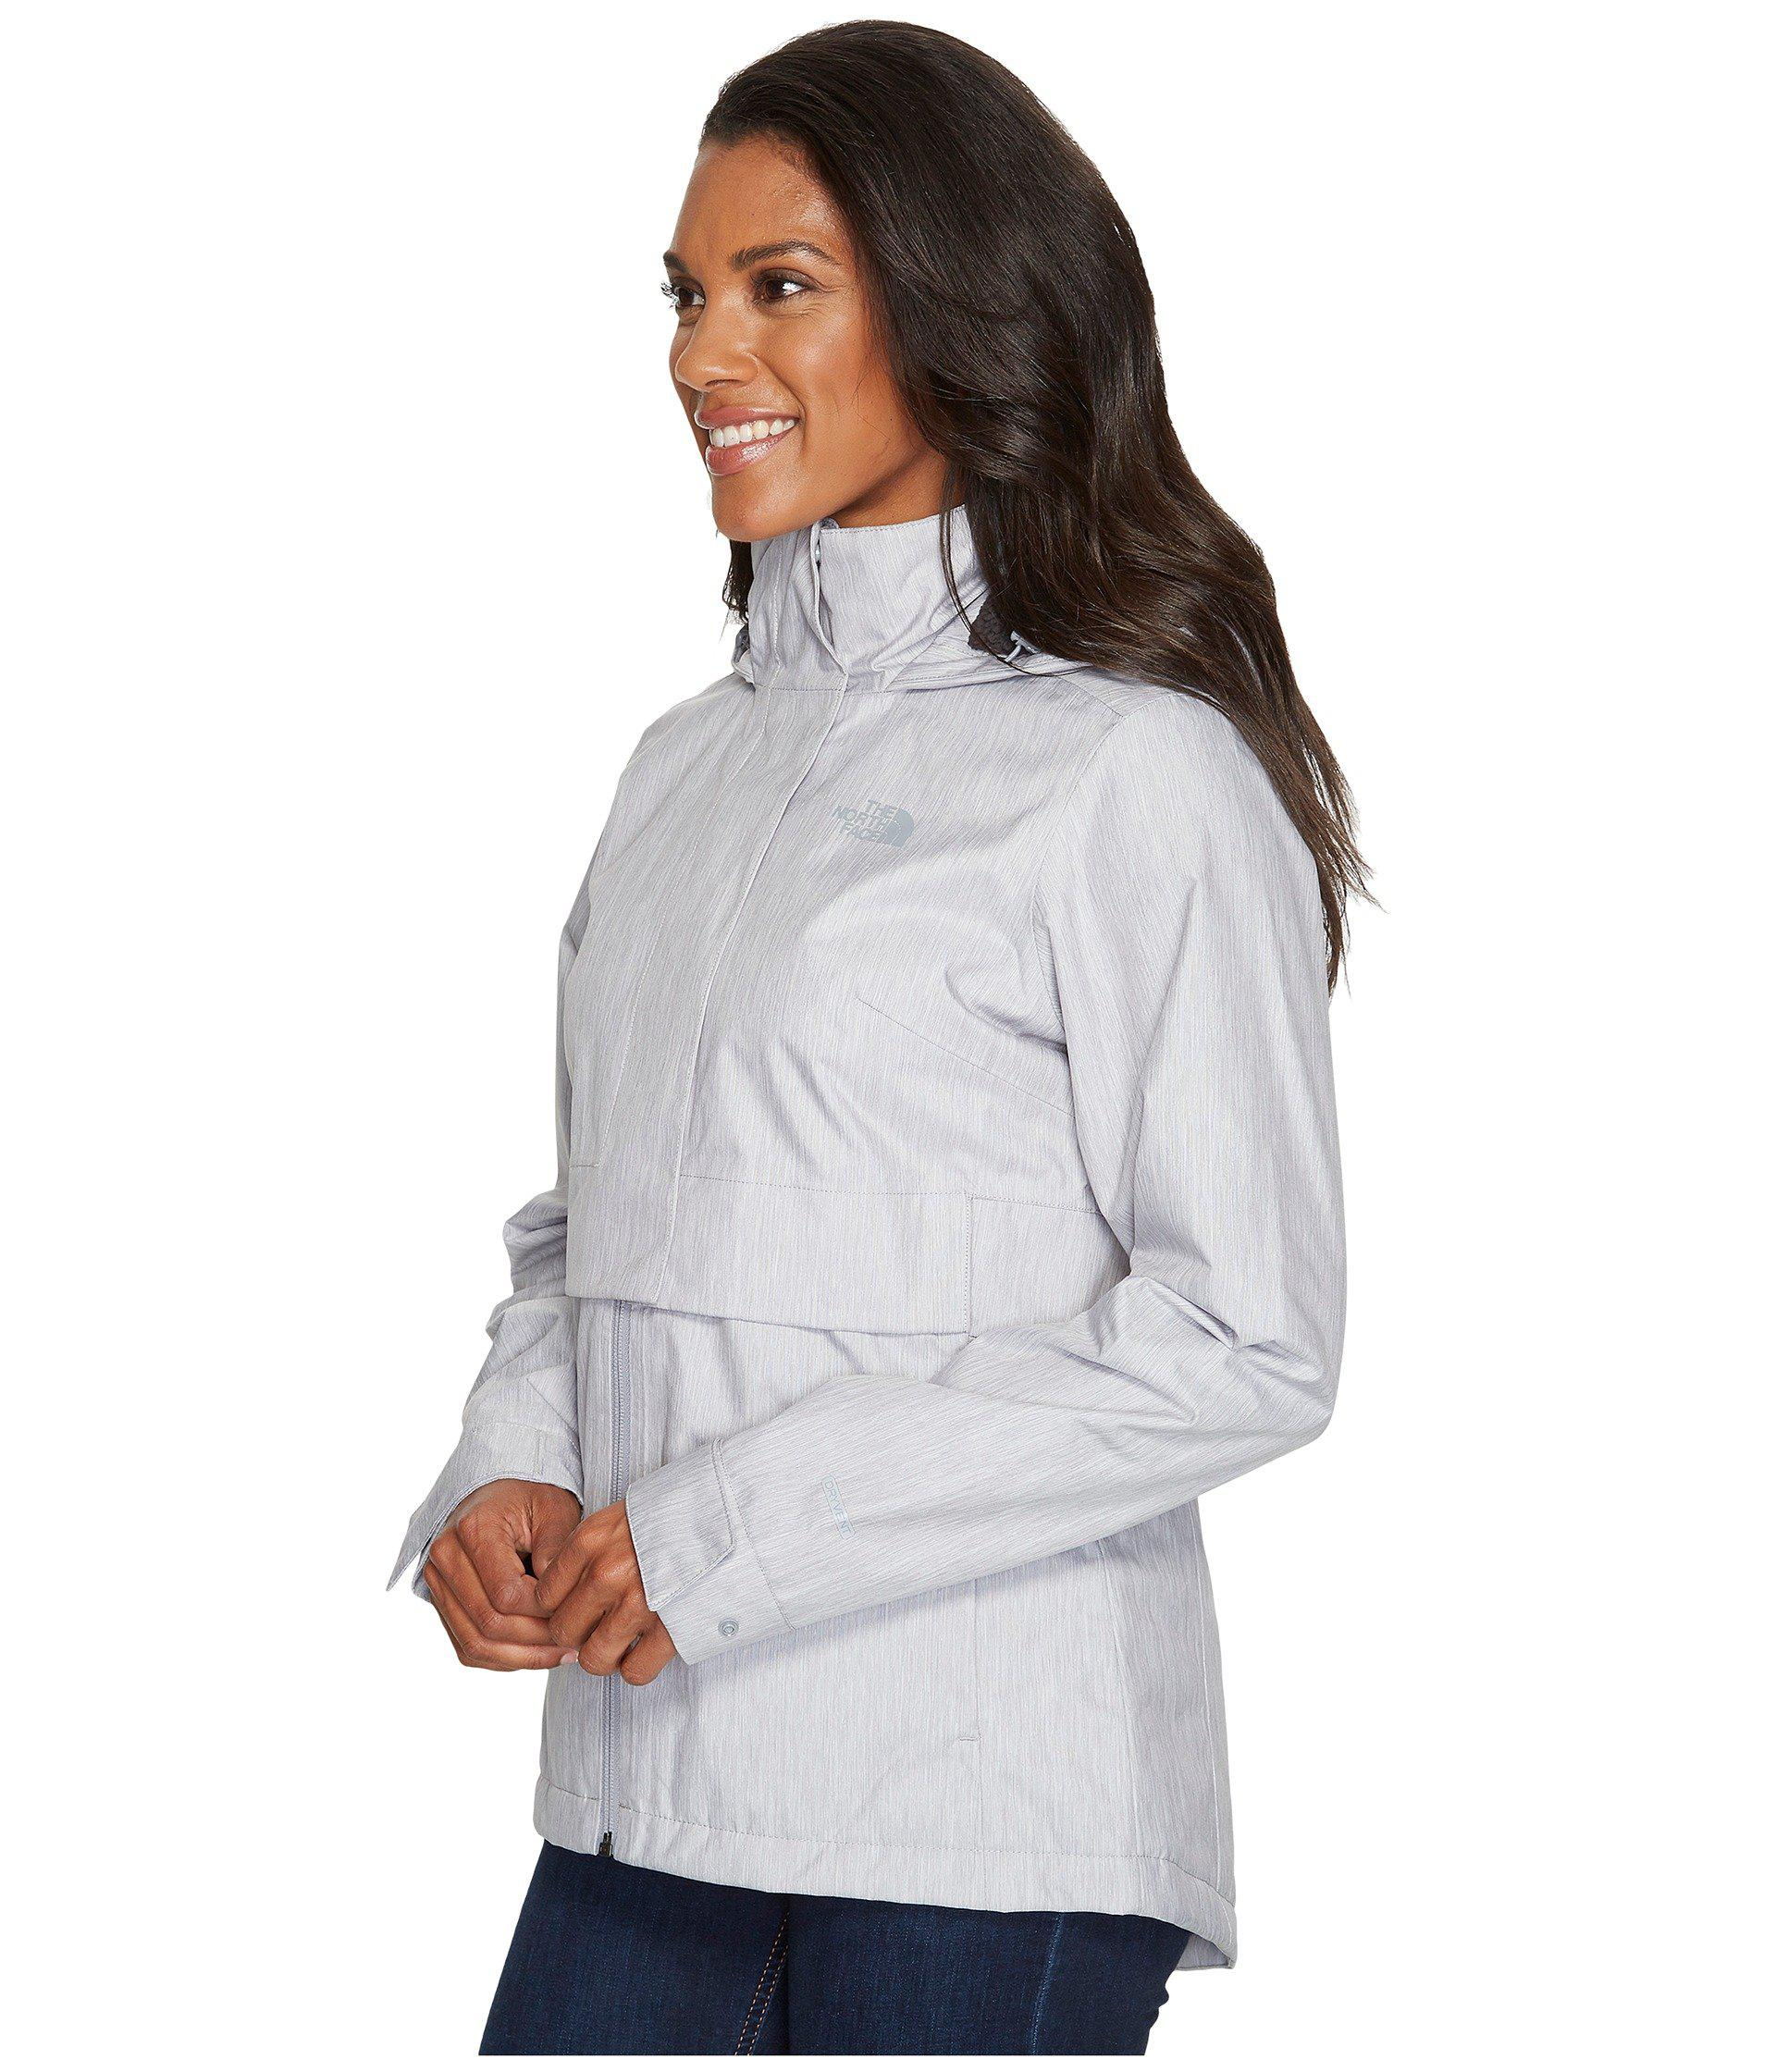 e322b8629546 Lyst - The North Face Morialta Jacket in Gray - Save 44%